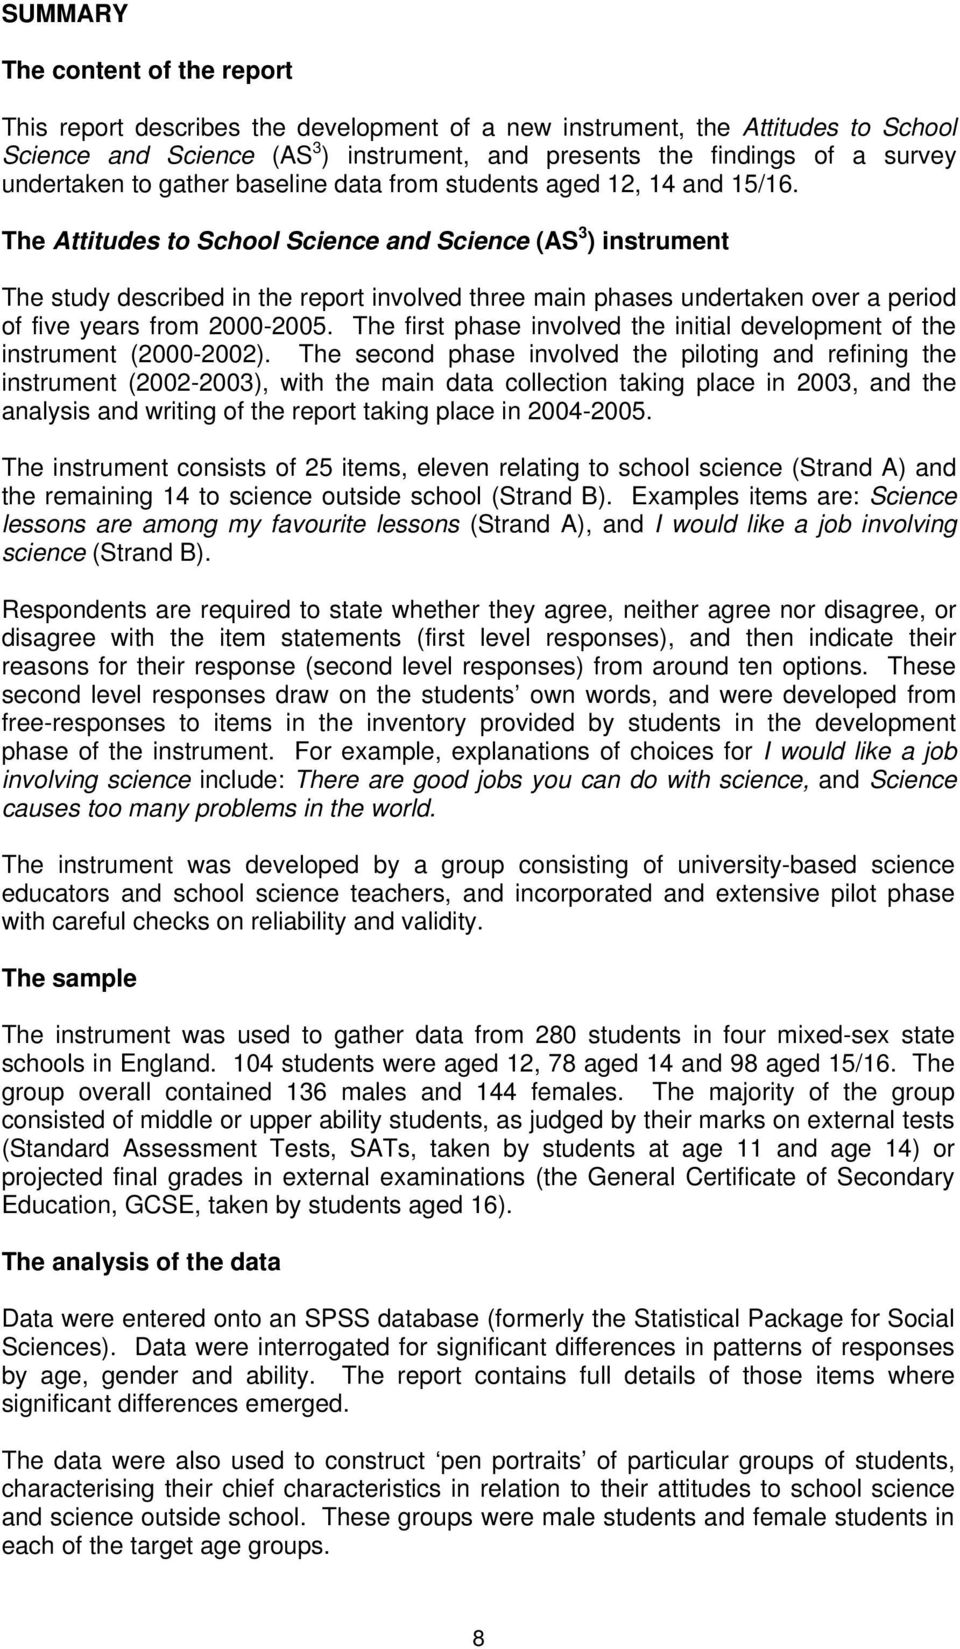 The Attitudes to School Science and Science (AS 3 ) instrument The study described in the report involved three main phases undertaken over a period of five years from 2000-2005.